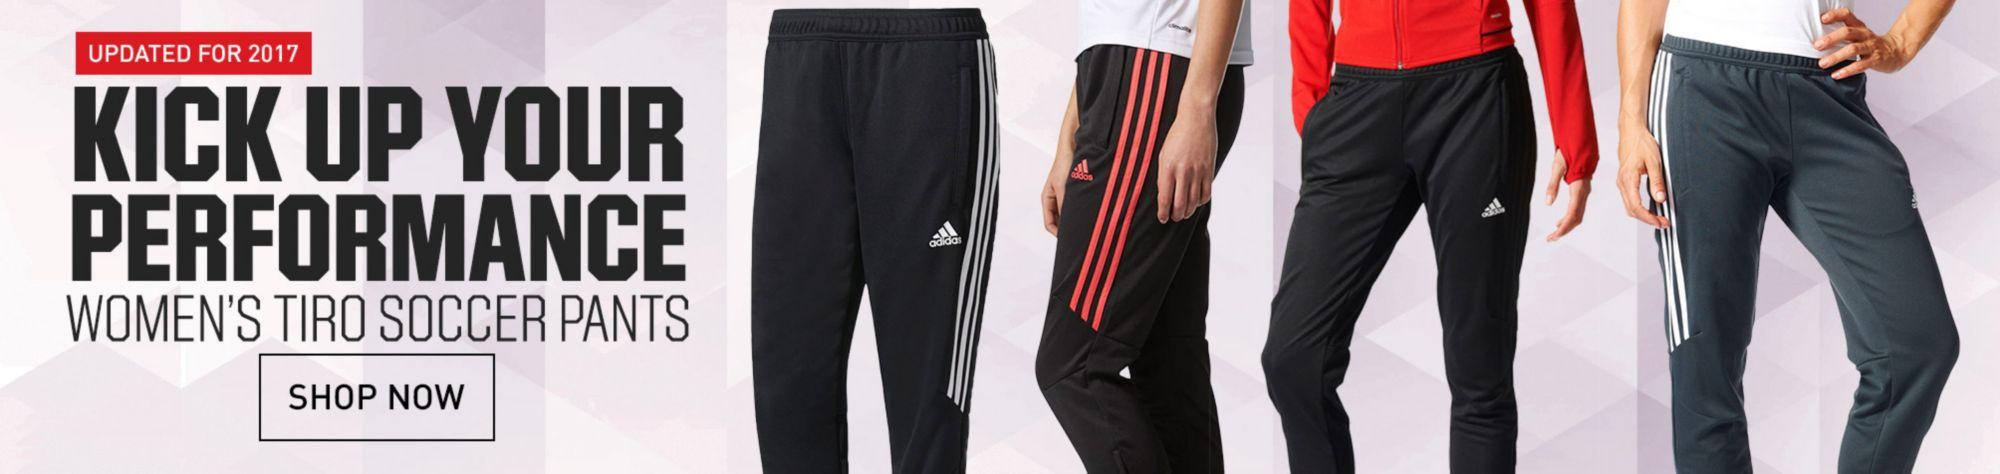 Women's Tiro Soccer Pants